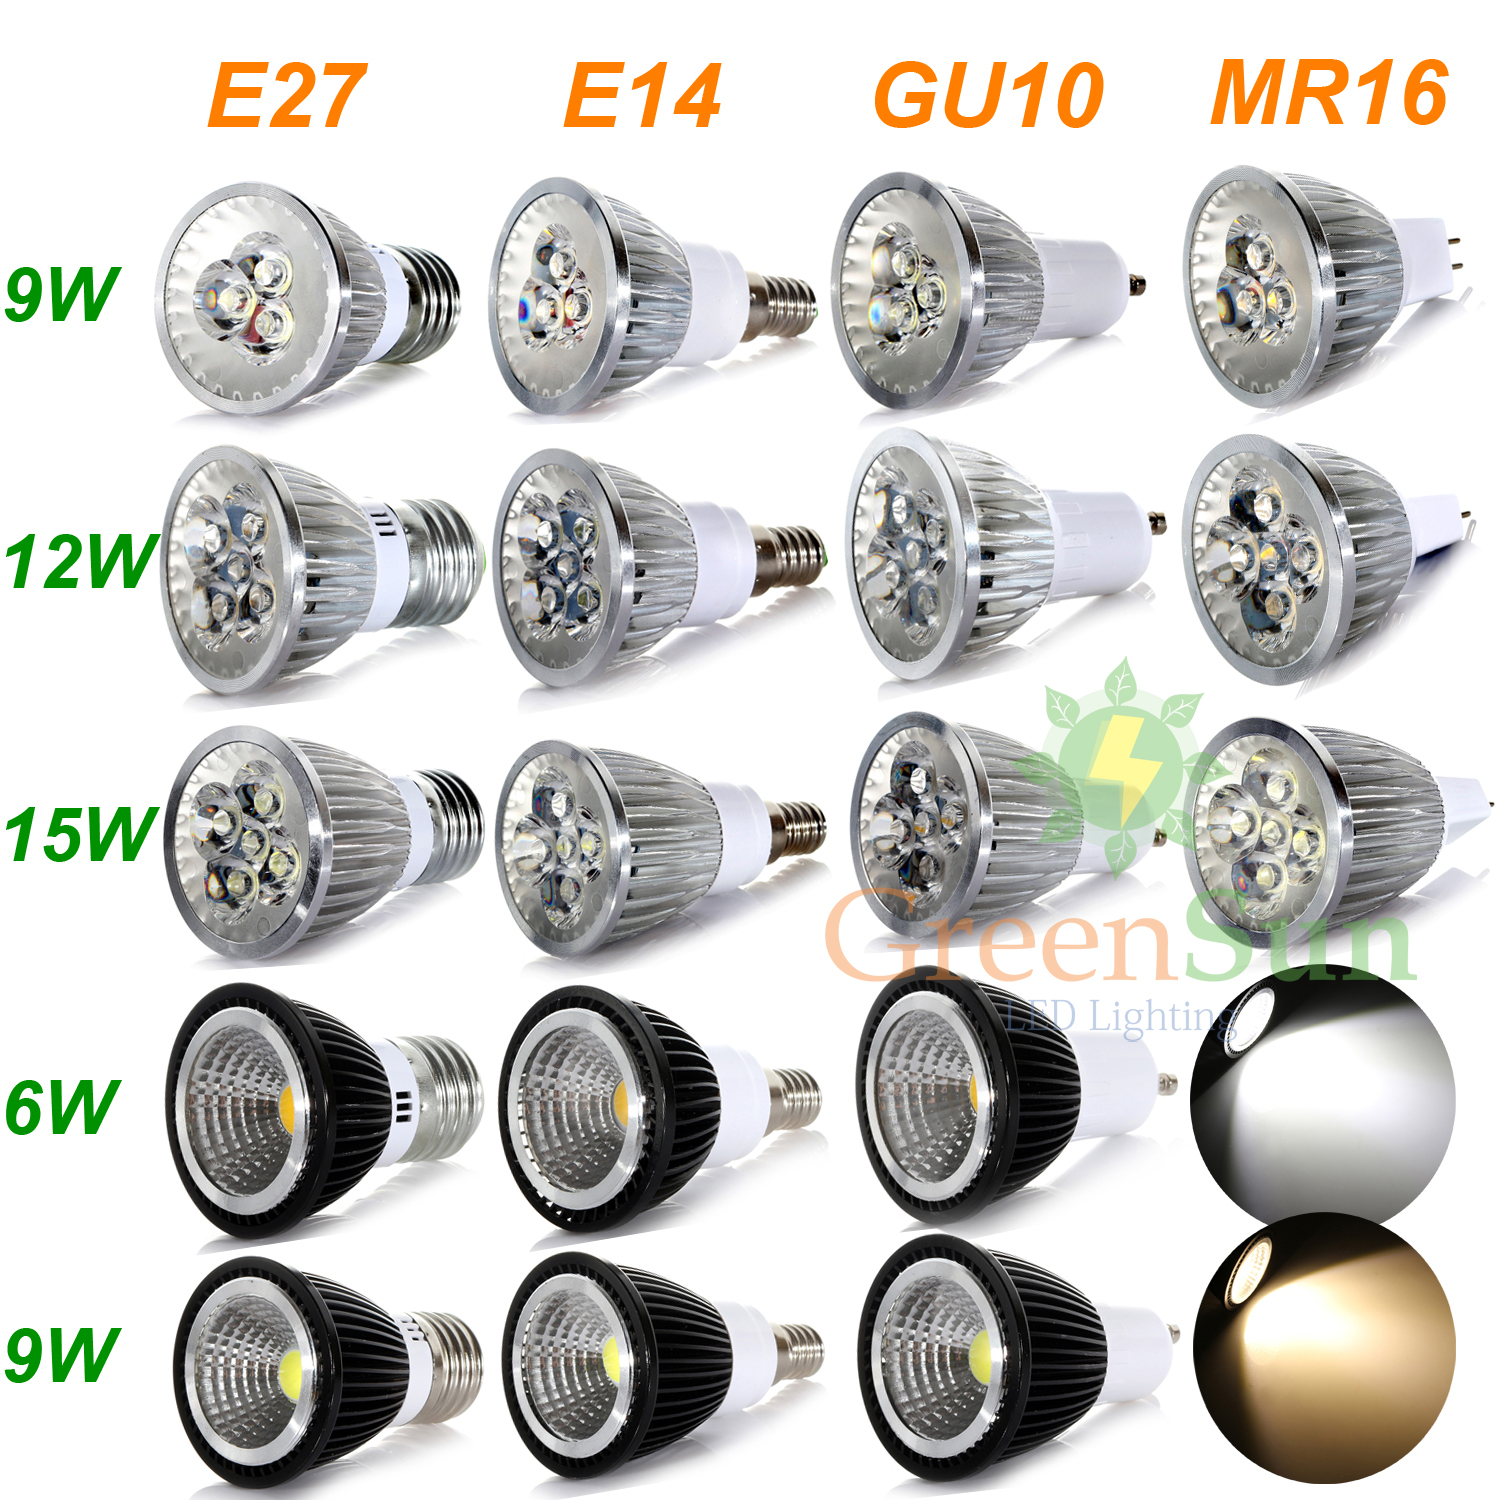 4/10x MR16/GU10/E27/E14 6W 9W 12W 15W COB LED Spotlight Spot Light Lamp Bulb UK  eBay